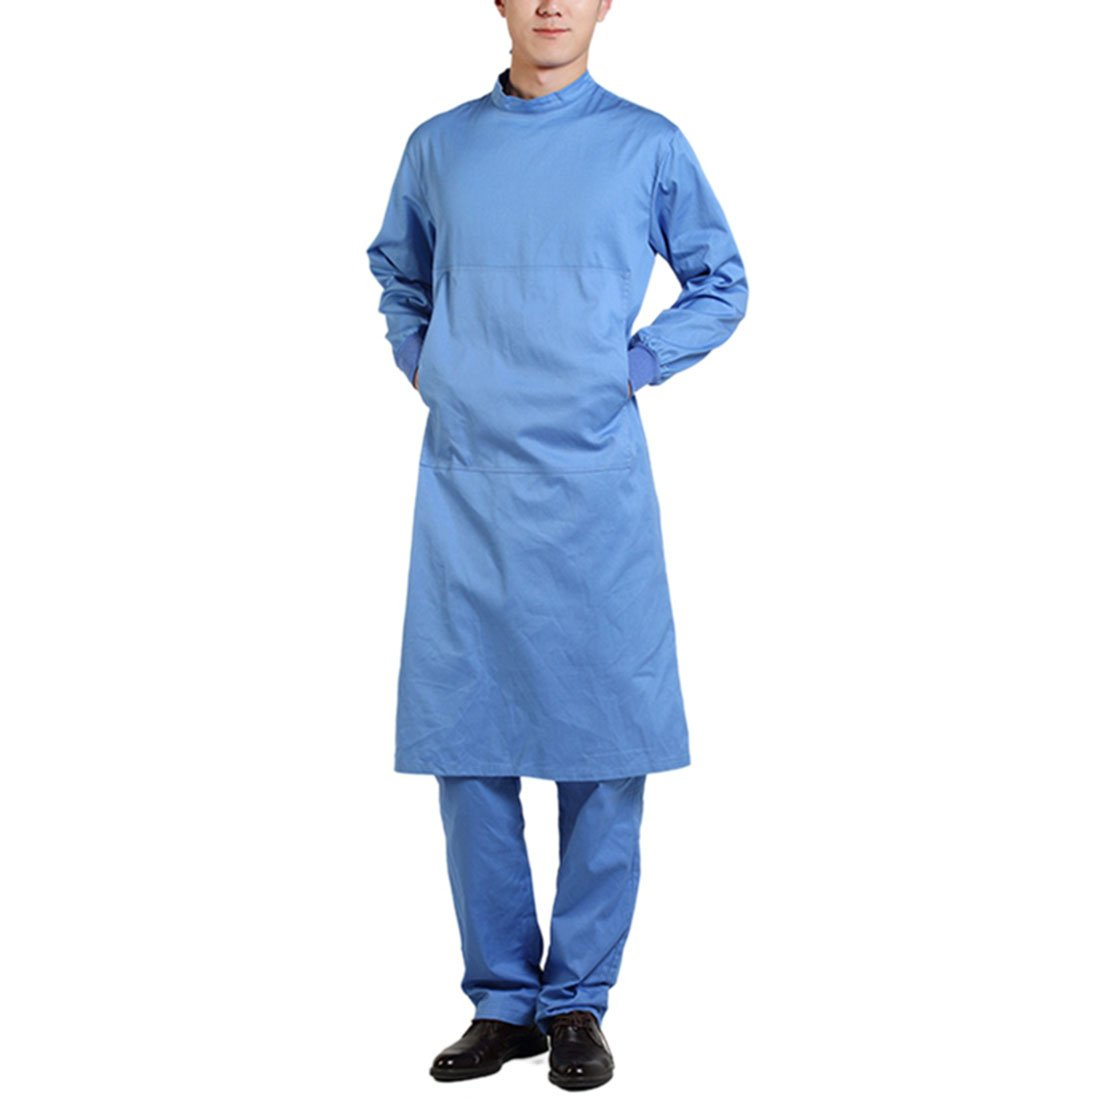 Pinji Surgical Gown Semi-coated Cotton Surgical Clothes High Temperature Resistance Workwear for Hospital Blue(Men) L